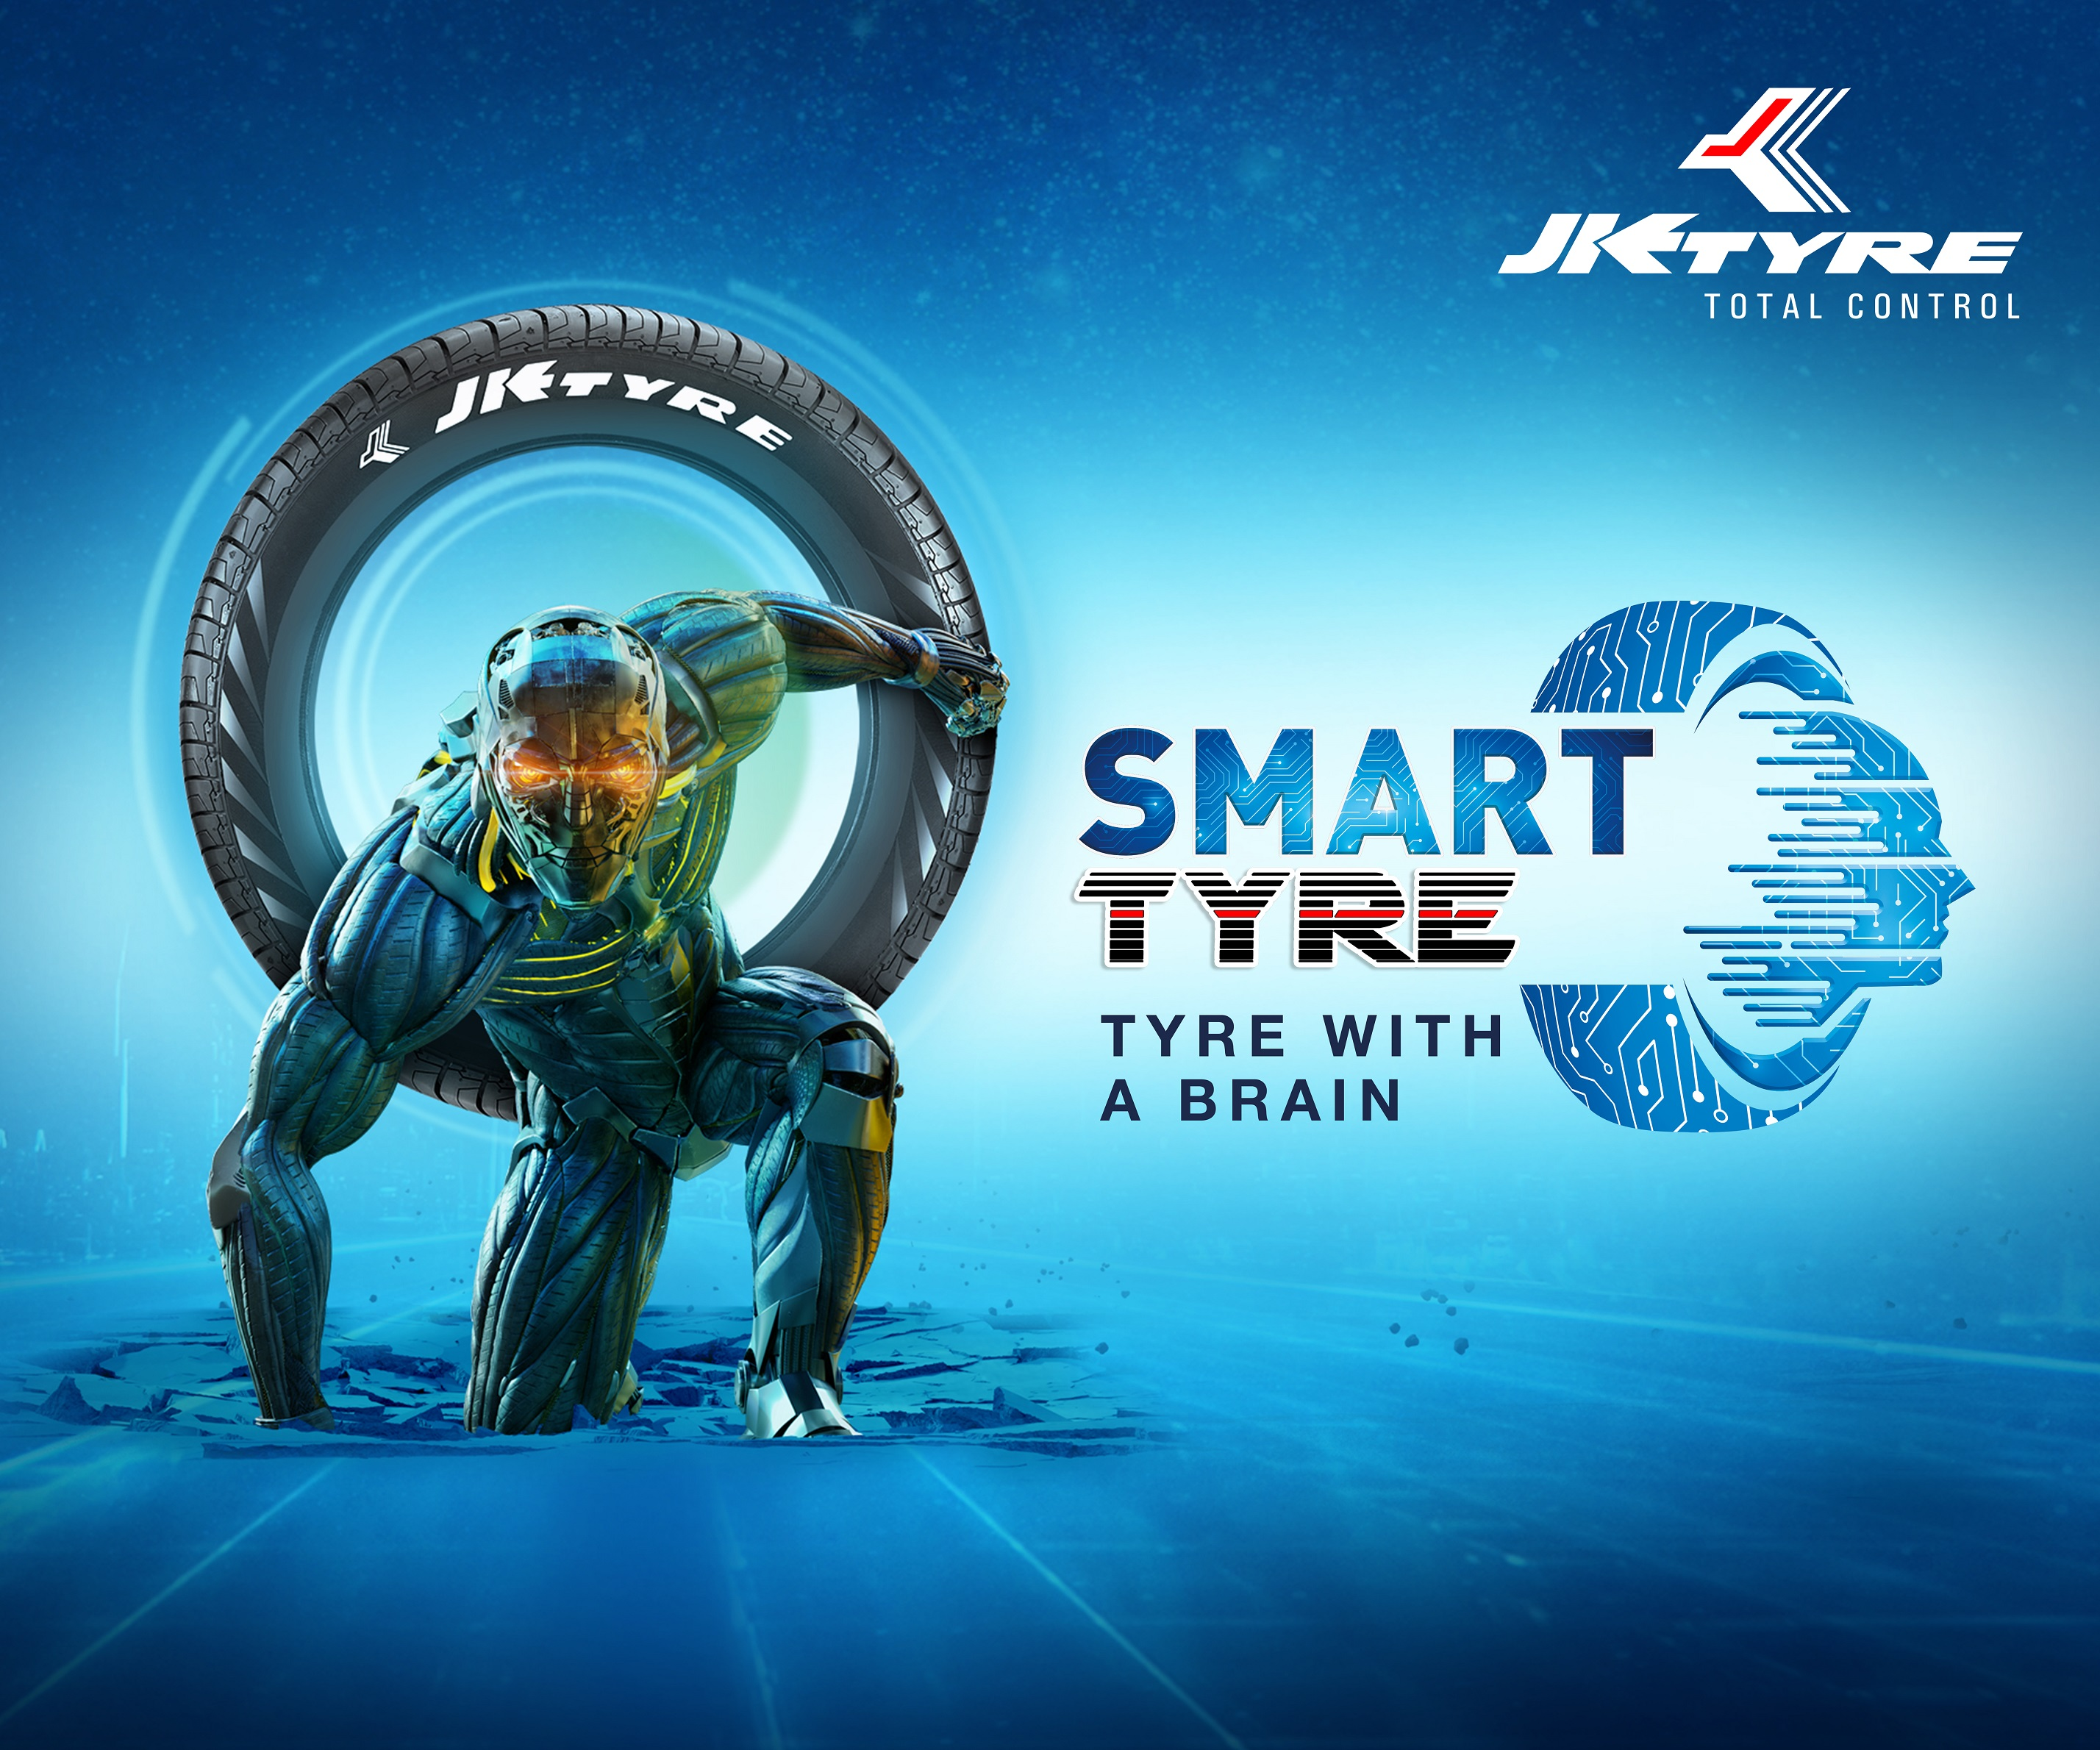 JK TYRE & INDUSTRIES LAUNCHES ITS NEW TVC CAMPAIGN  'SMART TYRE - TYRE WITH A BRAIN'